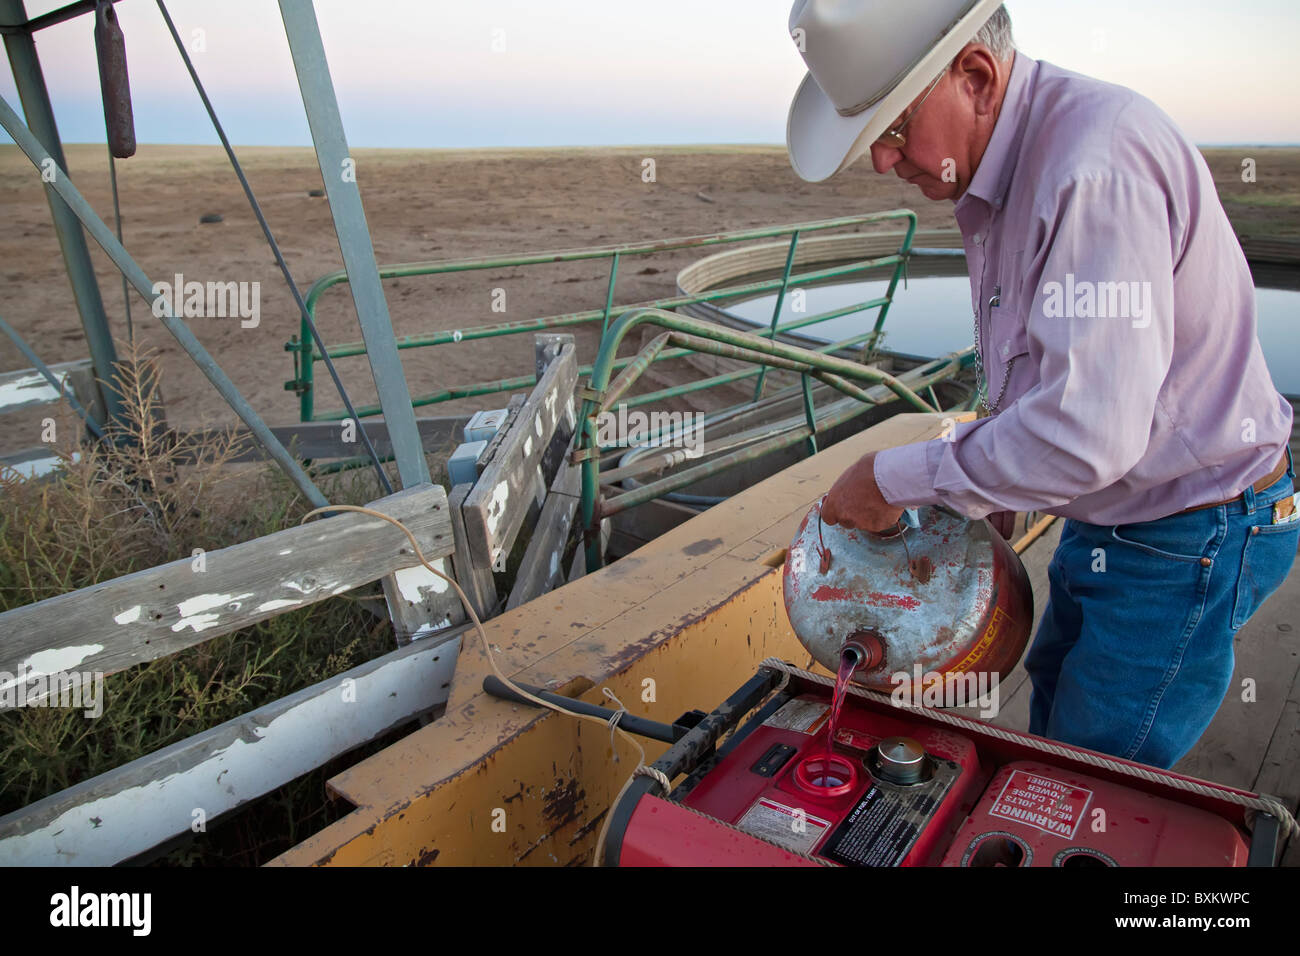 Rancher Fills Generator with Diesel Fuel to Pump Water for Cattle - Stock Image